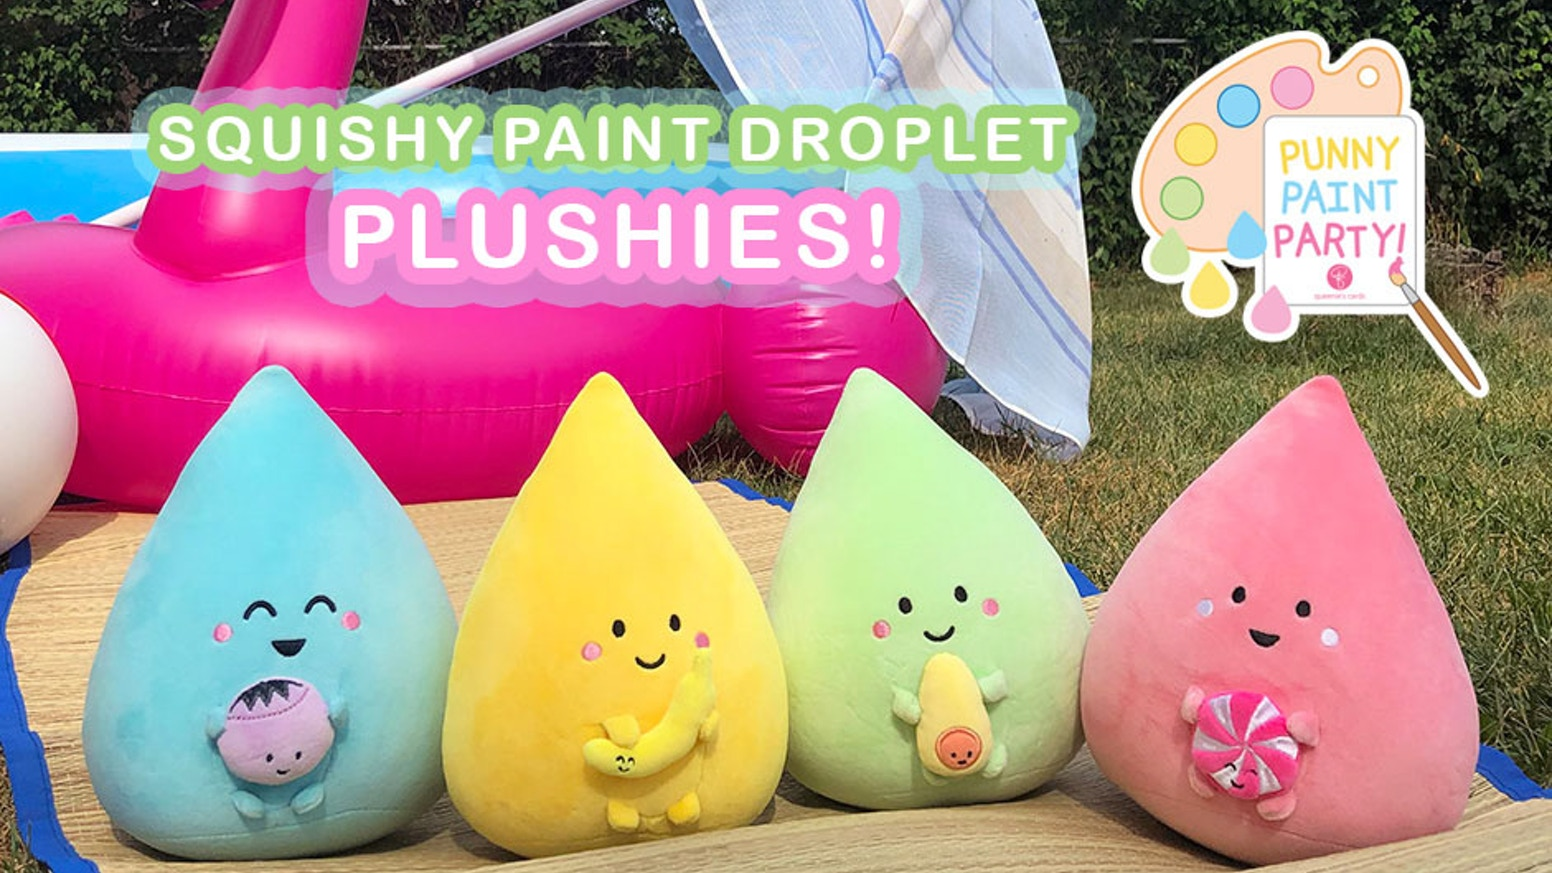 The paint droplet plush toys (with their fave foods) are ready to come to life!